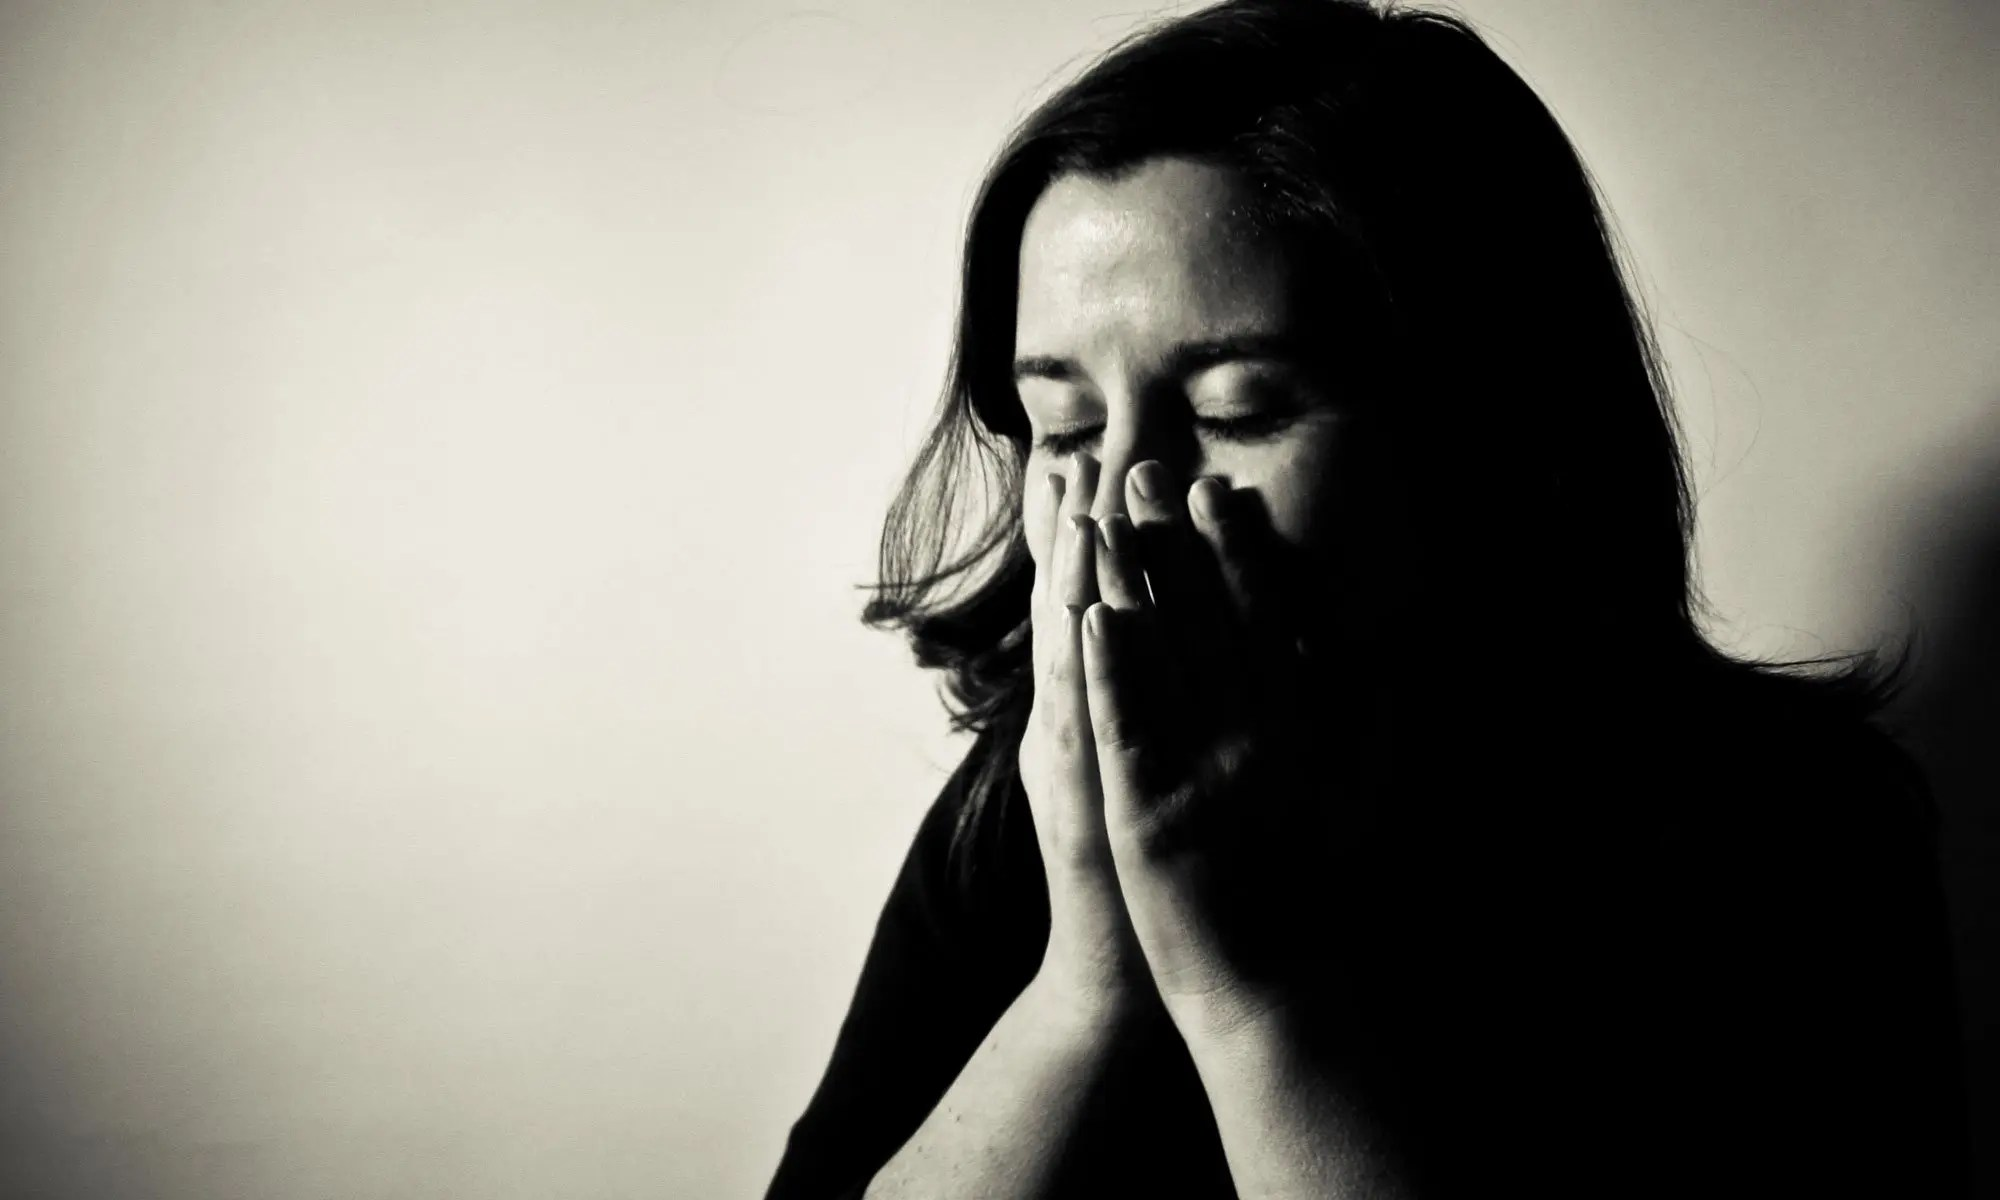 image of stress in woman